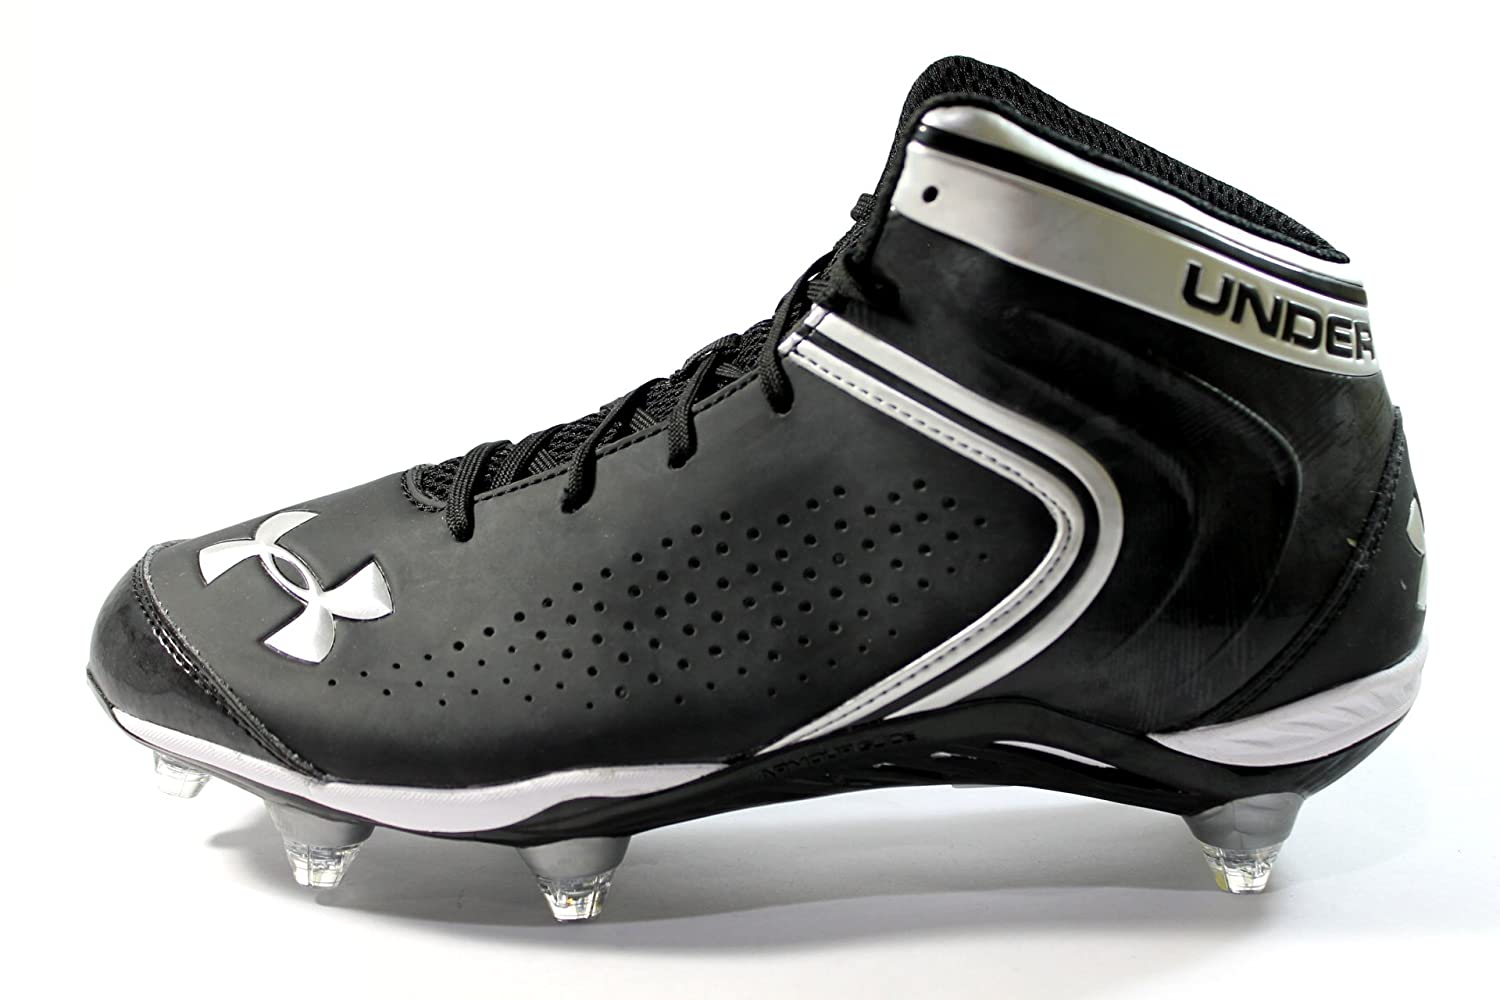 c15139617fa0 Amazon.com | Under Armour Men's Saber Mid D Black Football Cleats Wide  Width Size (11EE) | Football